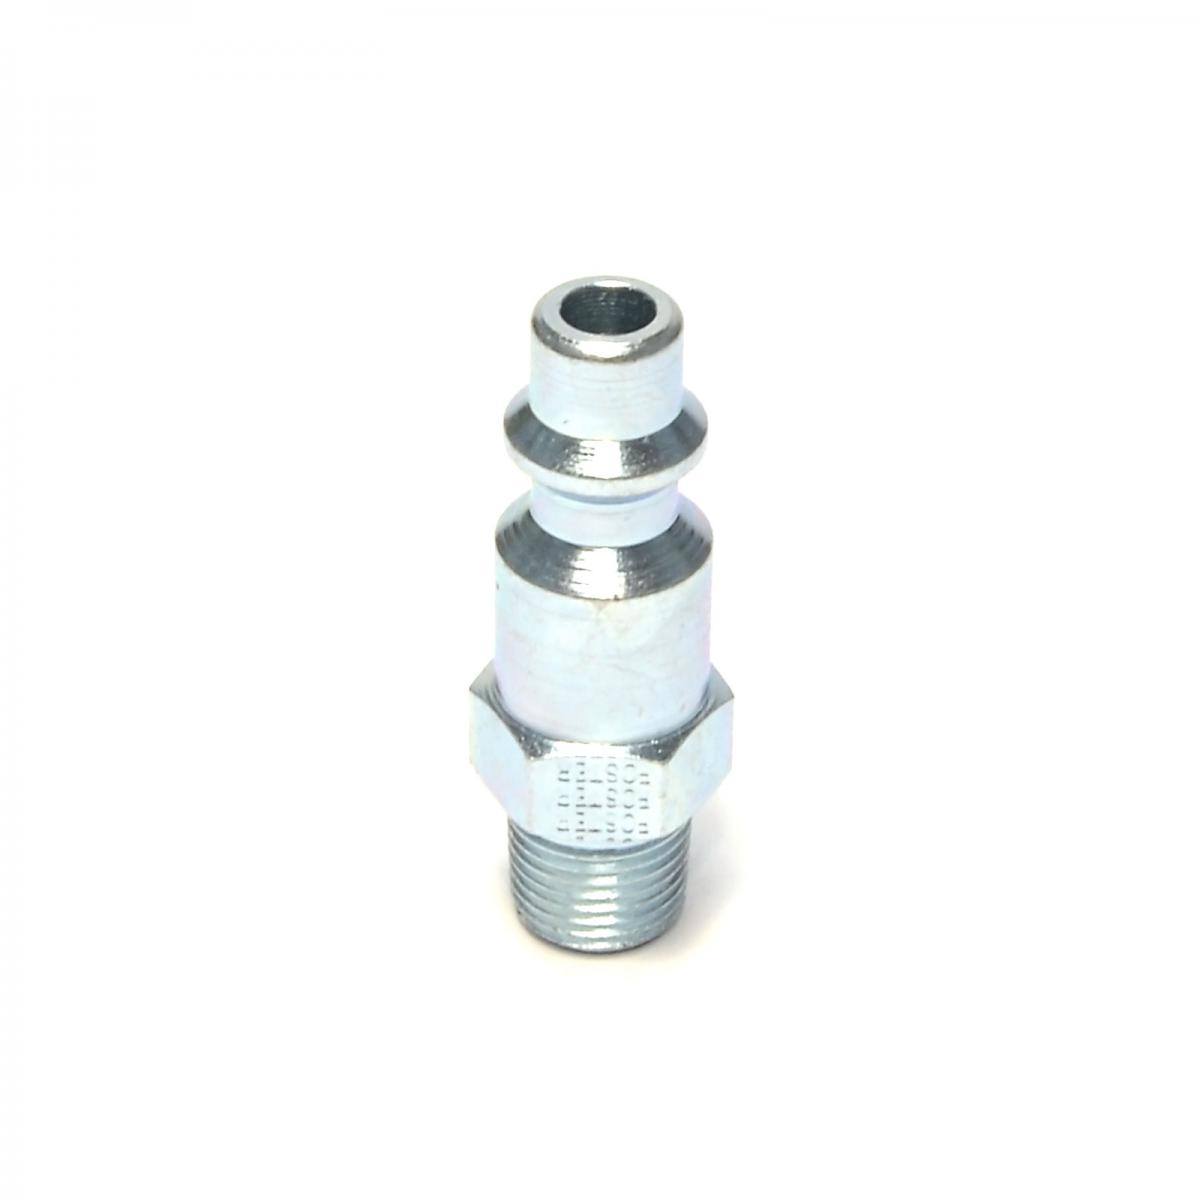 Quick Connect Fittings >> Details About 1 8 Npt Pneumatic Air Compressor Hose Male Quick Connect Fitting Coupler Plug